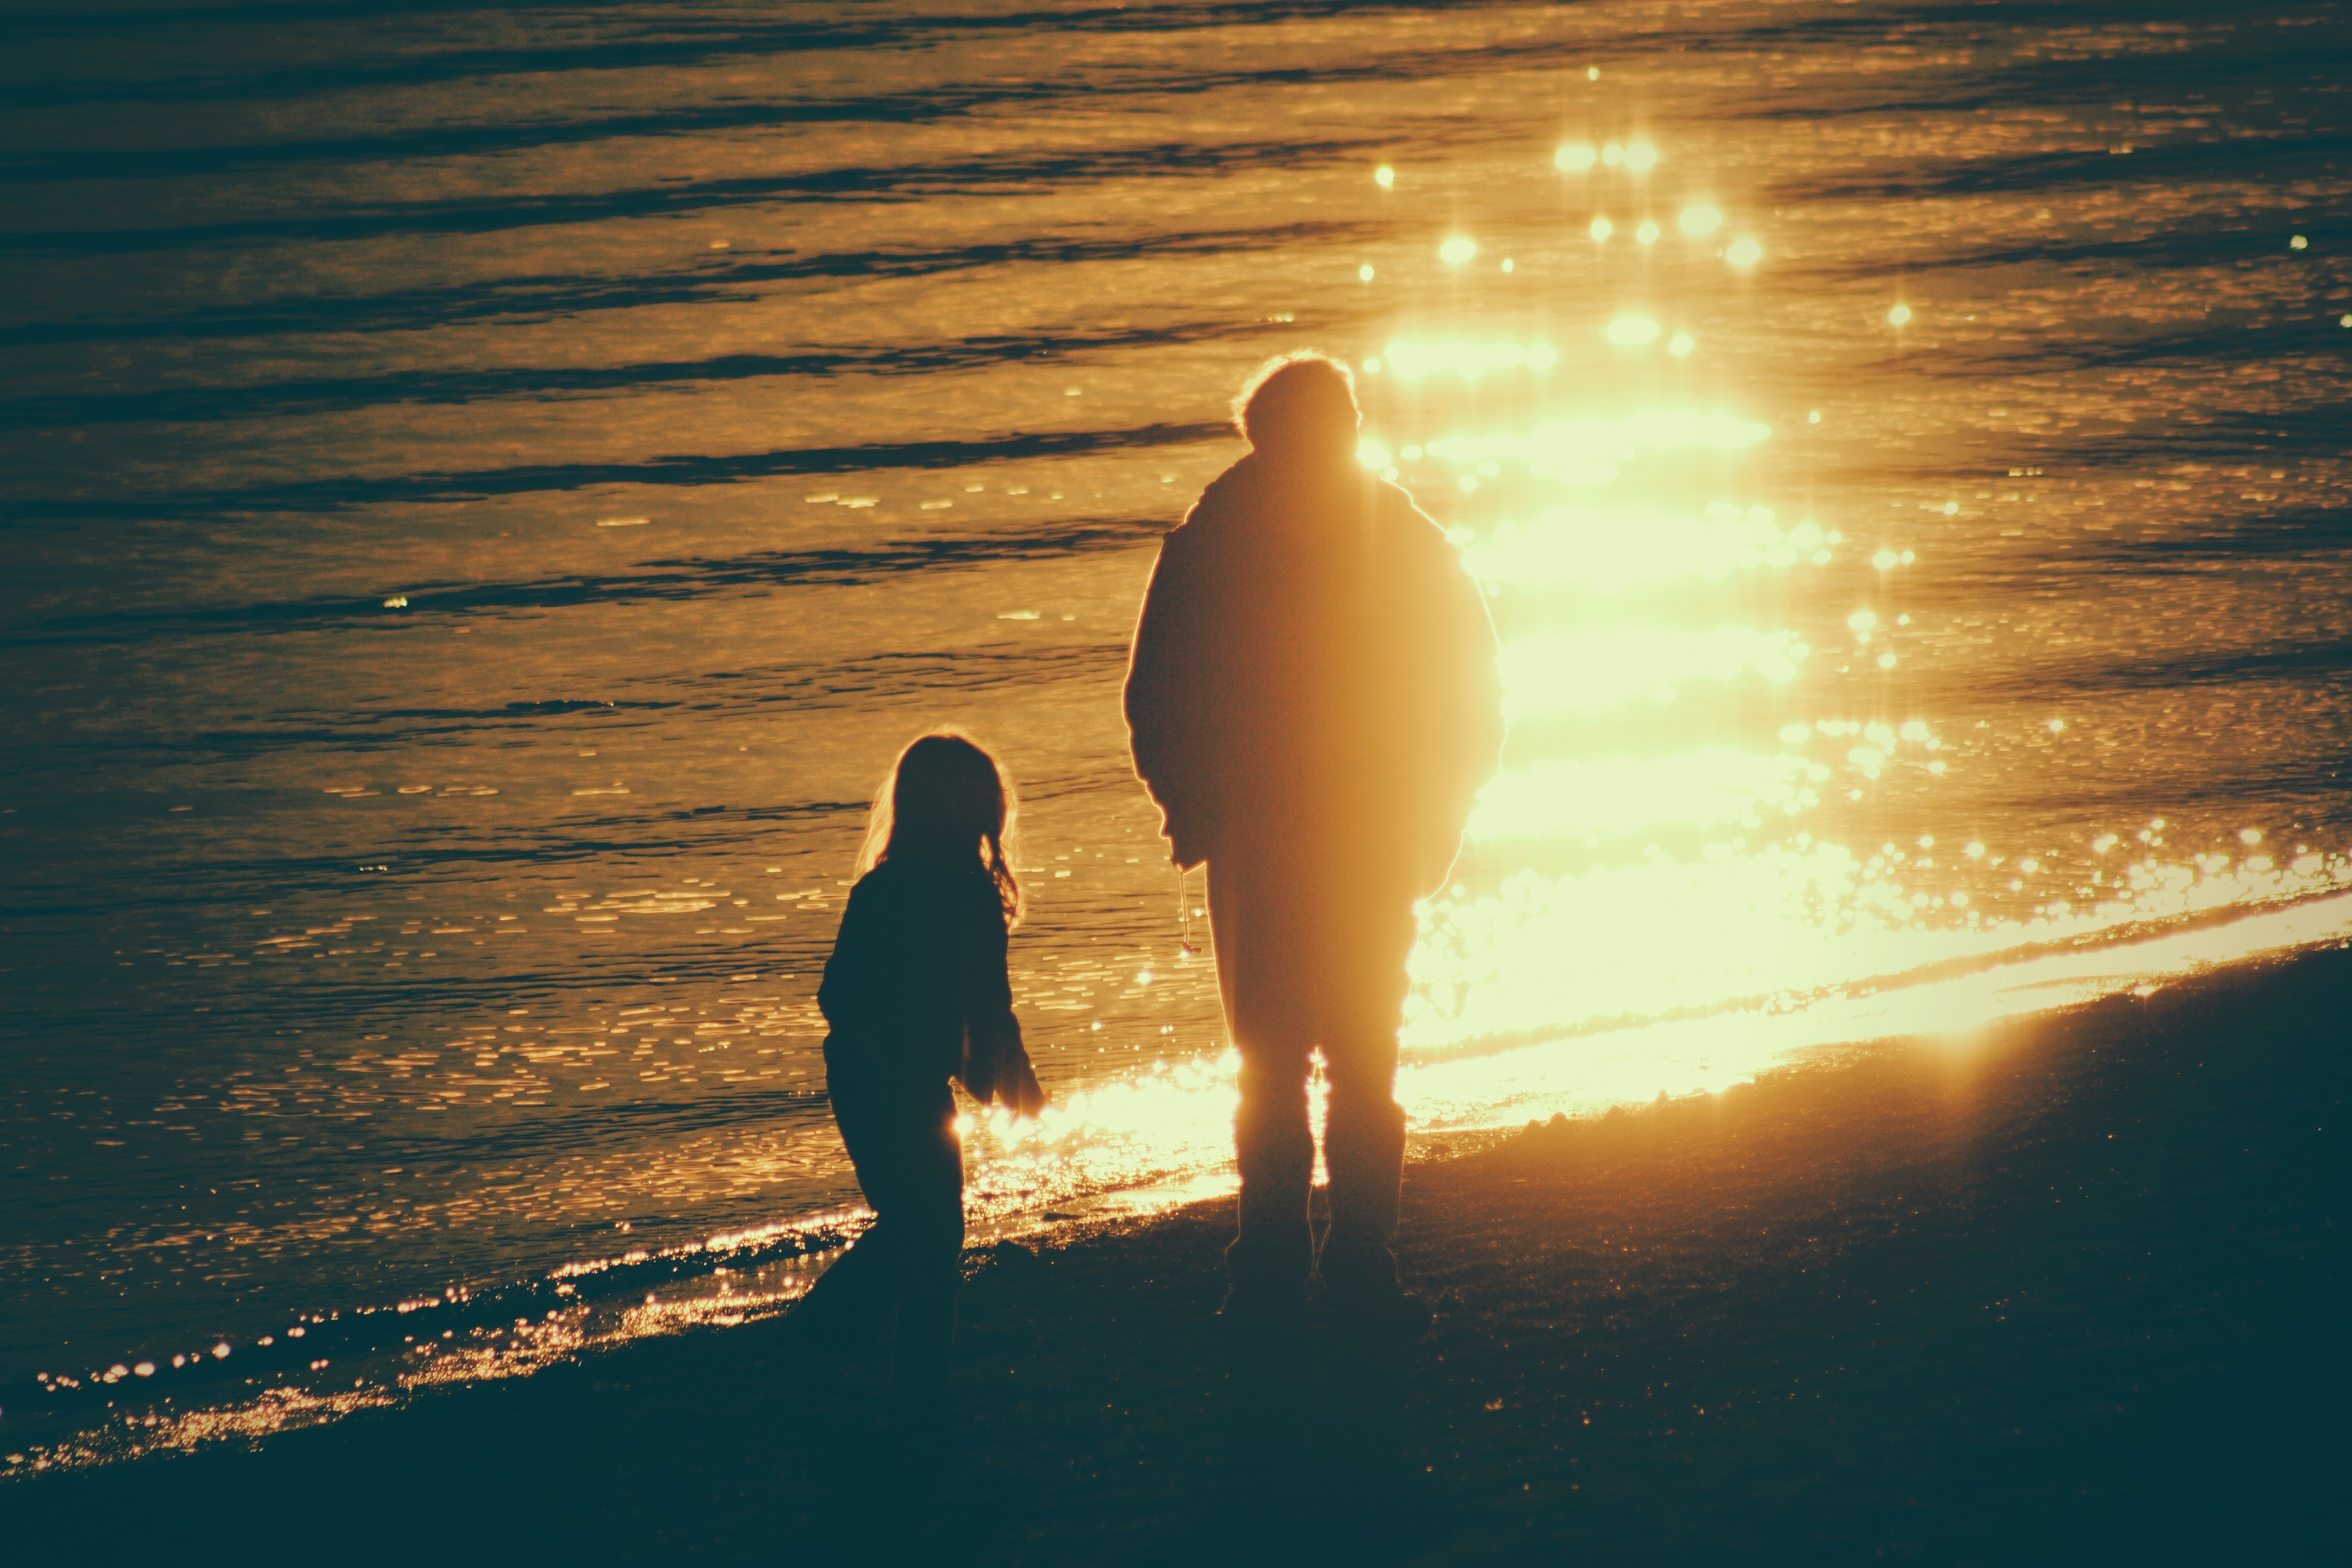 adult and child near seashore during sunset